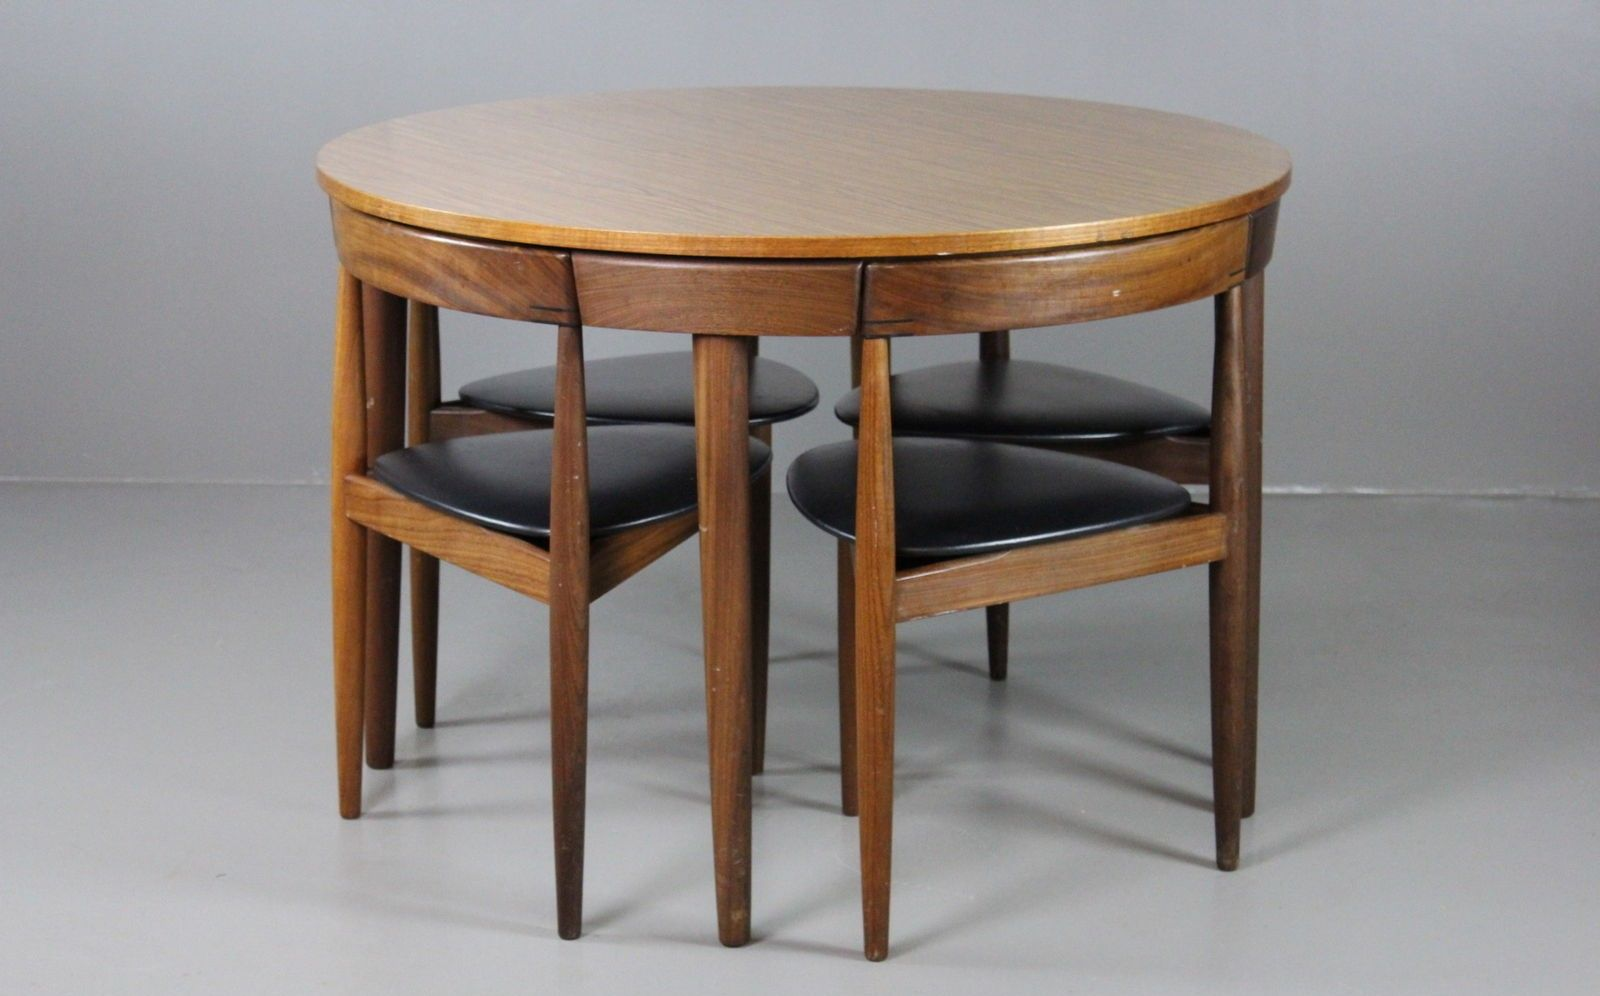 vintage danish dining table chairs by hans olsen for frem ro